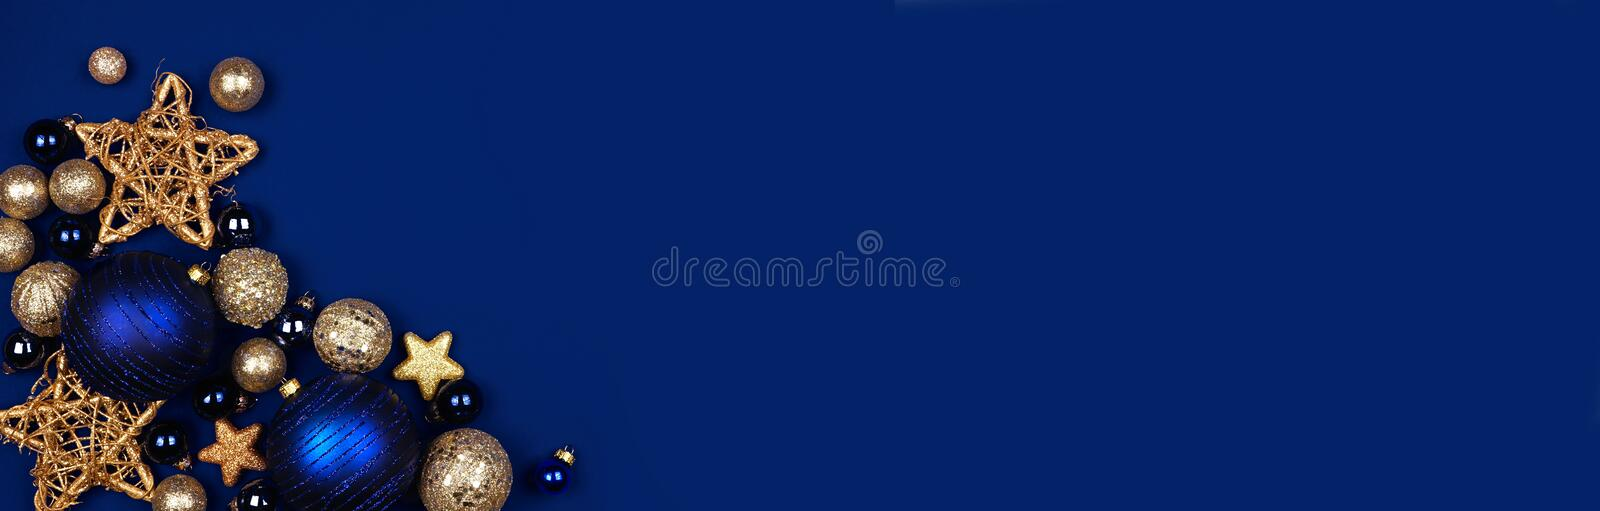 Christmas corner border banner of dark blue and gold ornaments, overhead on a midnight blue background. Christmas corner border banner of dark blue and gold royalty free stock photography